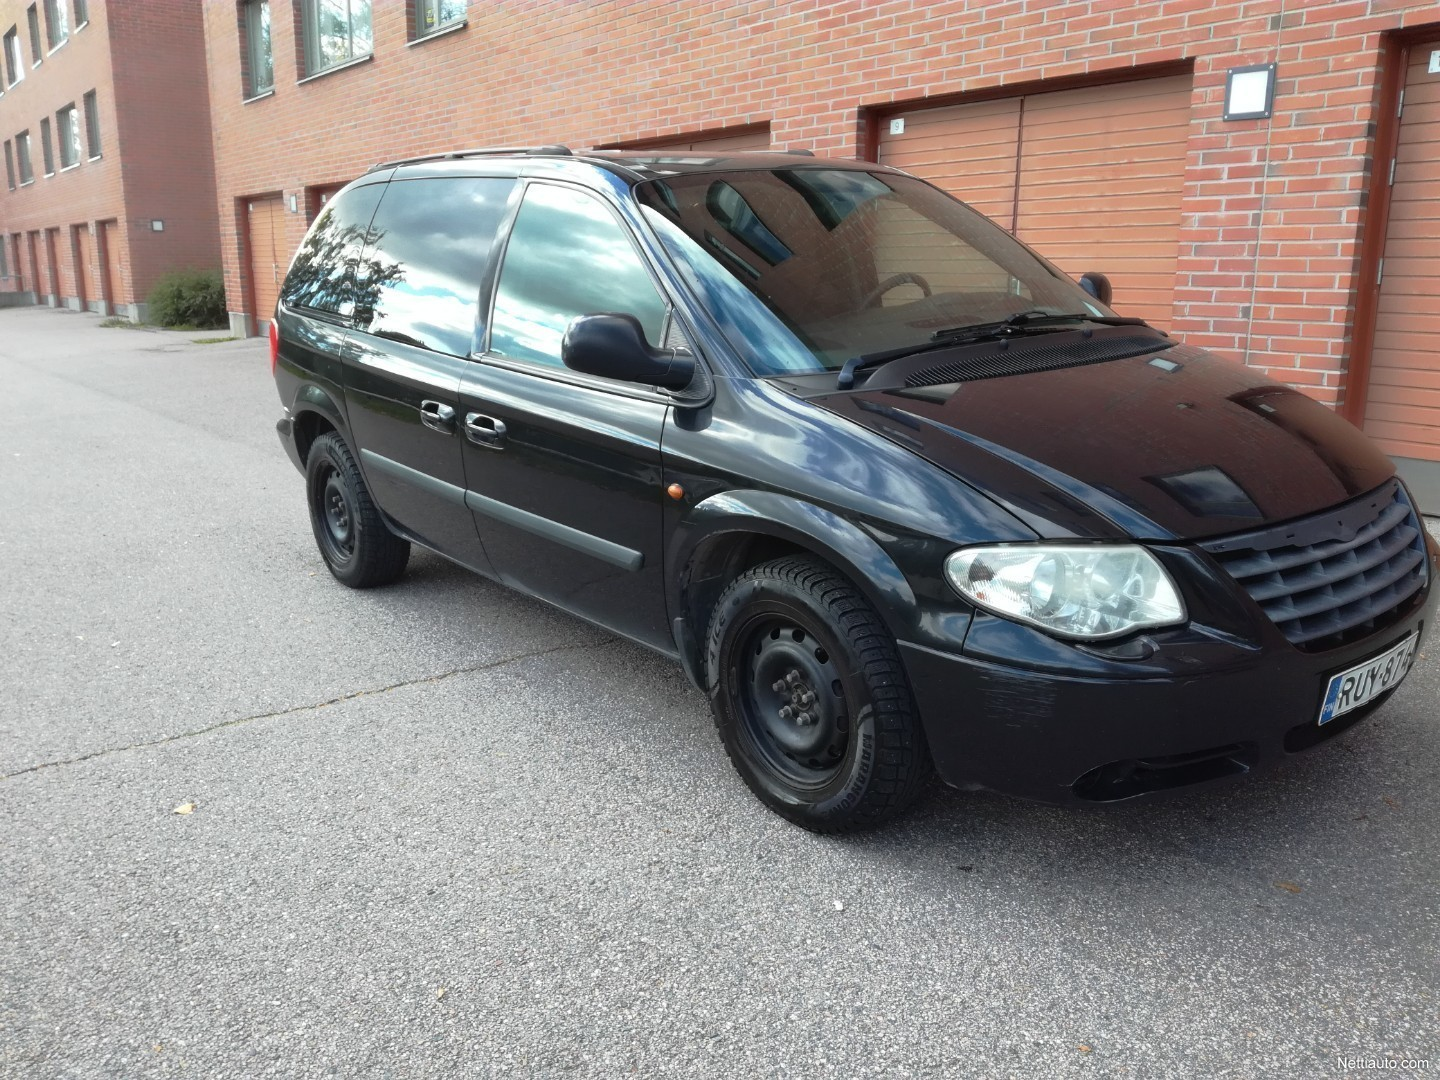 Chrysler Voyager 33 V6 Se Touring 5d 7h A Mpv 2005 Used Vehicle 1949 Town And Country Hubcaps Enlarge Image